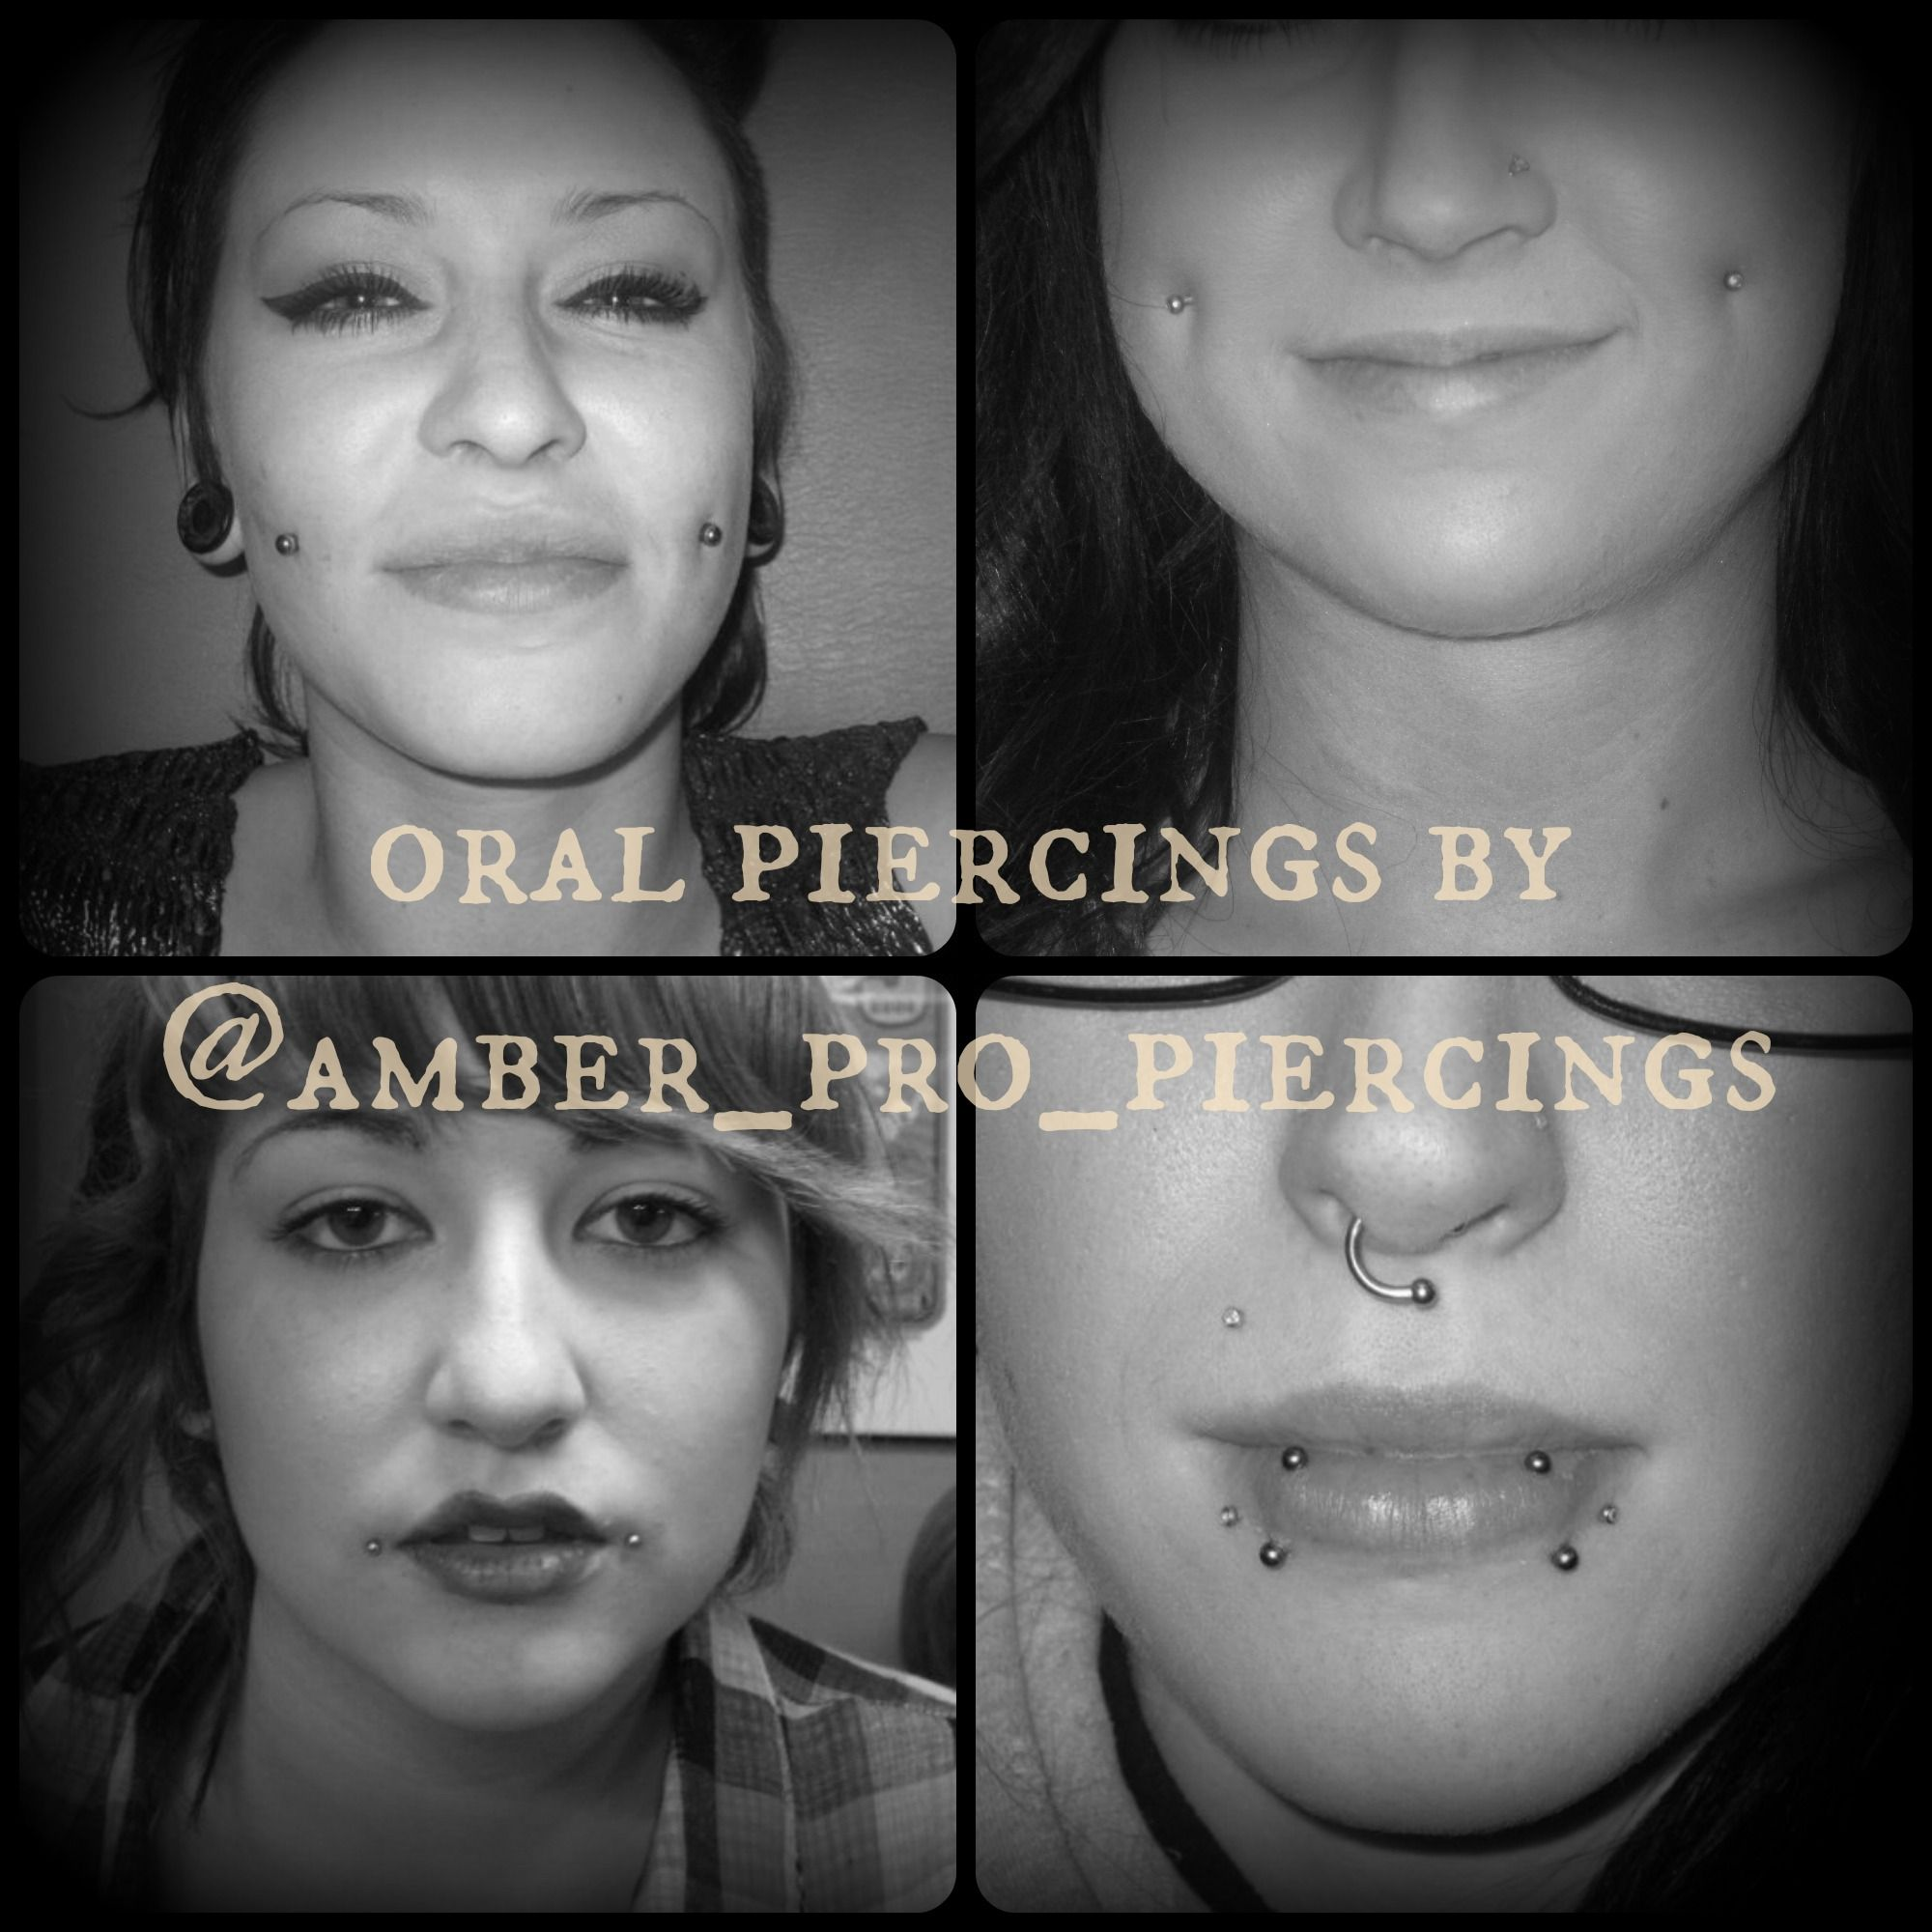 Cute lip piercing ideas  Pin by Pharaoh Tattoo Studio on Piercings and Microdermals by Amber